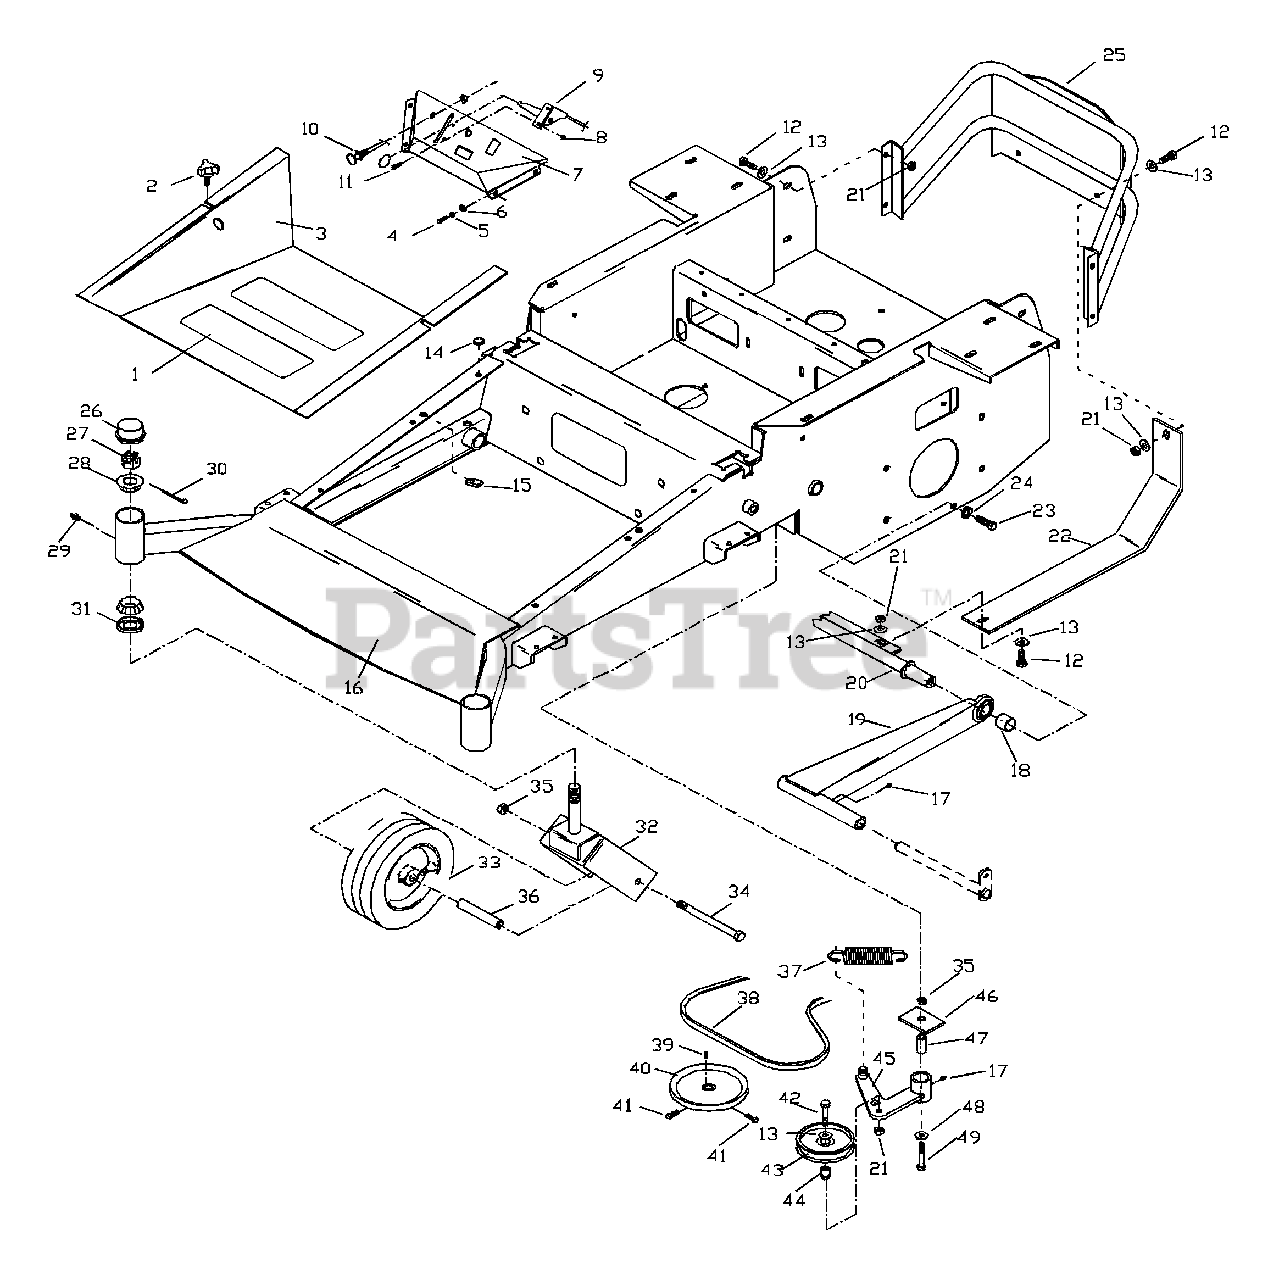 Husqvarna Parts on the Main Frame Diagram for ZTH 6125 KAA